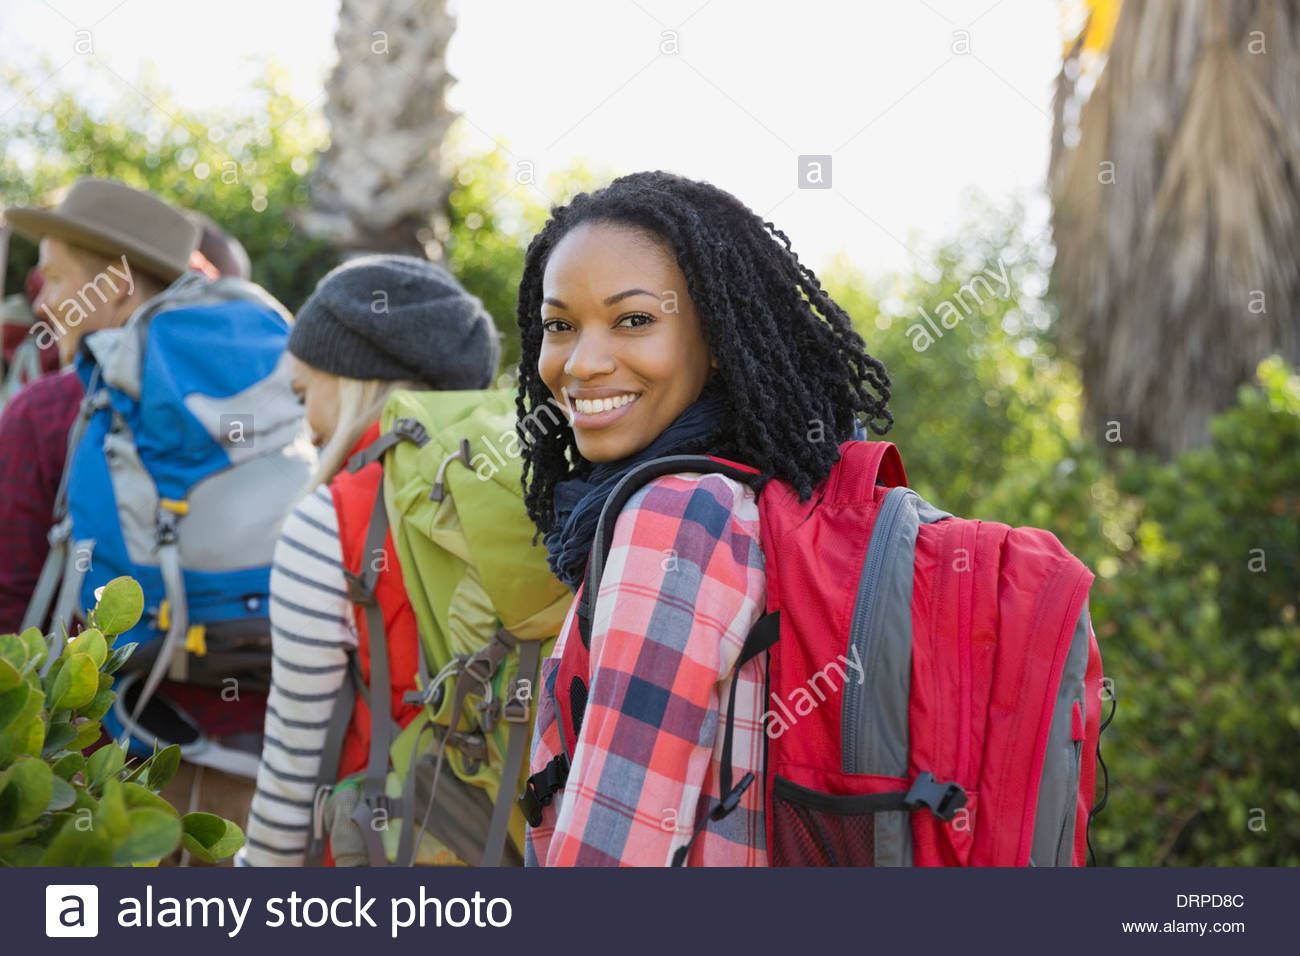 Portrait of confident woman backpacking with group - Stock Image